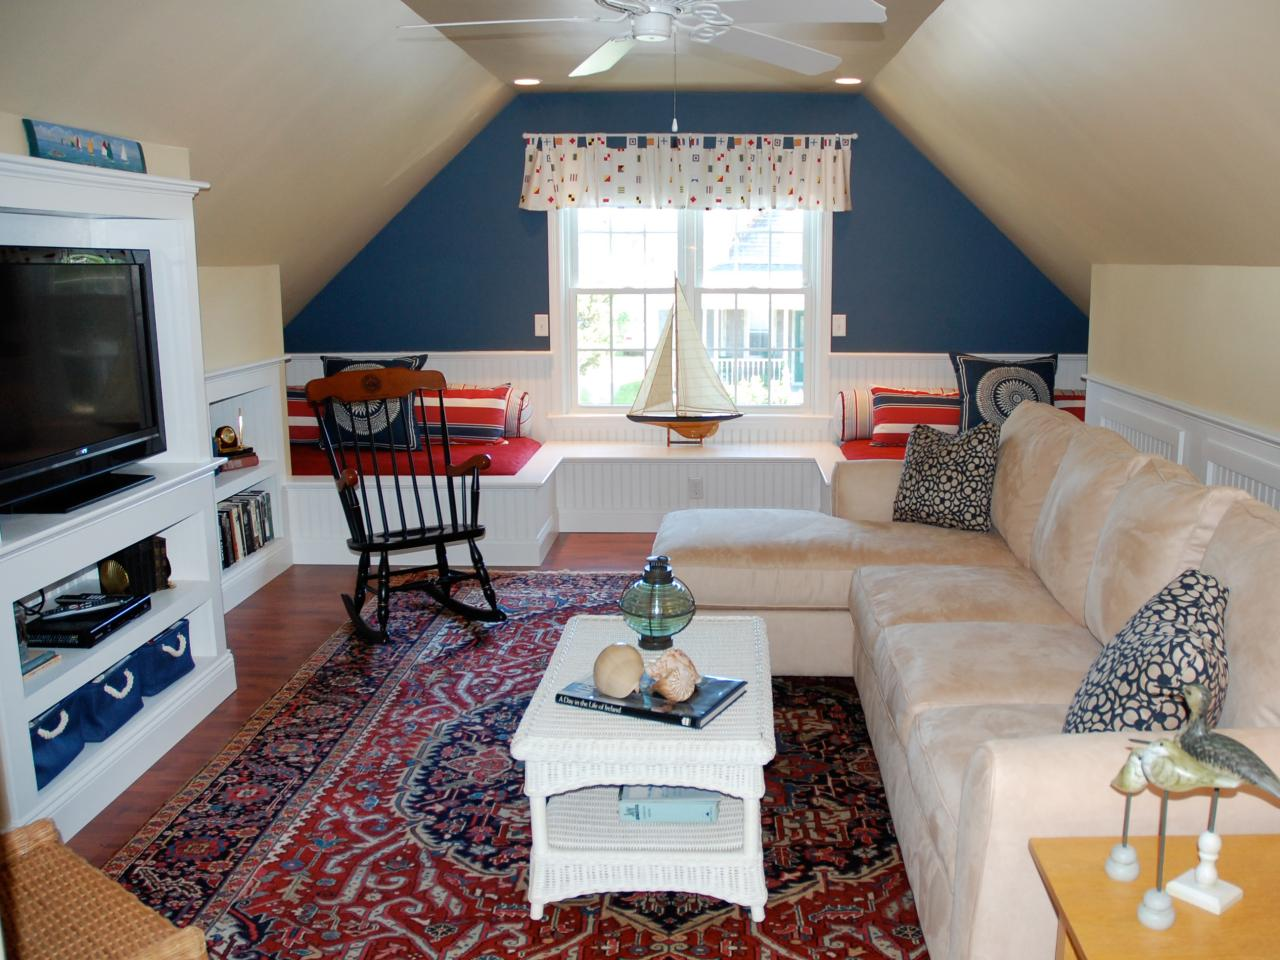 Medium Attic Living Room Design 16 Amazing Attic Remodels Storage Ideas How Tos For Closets